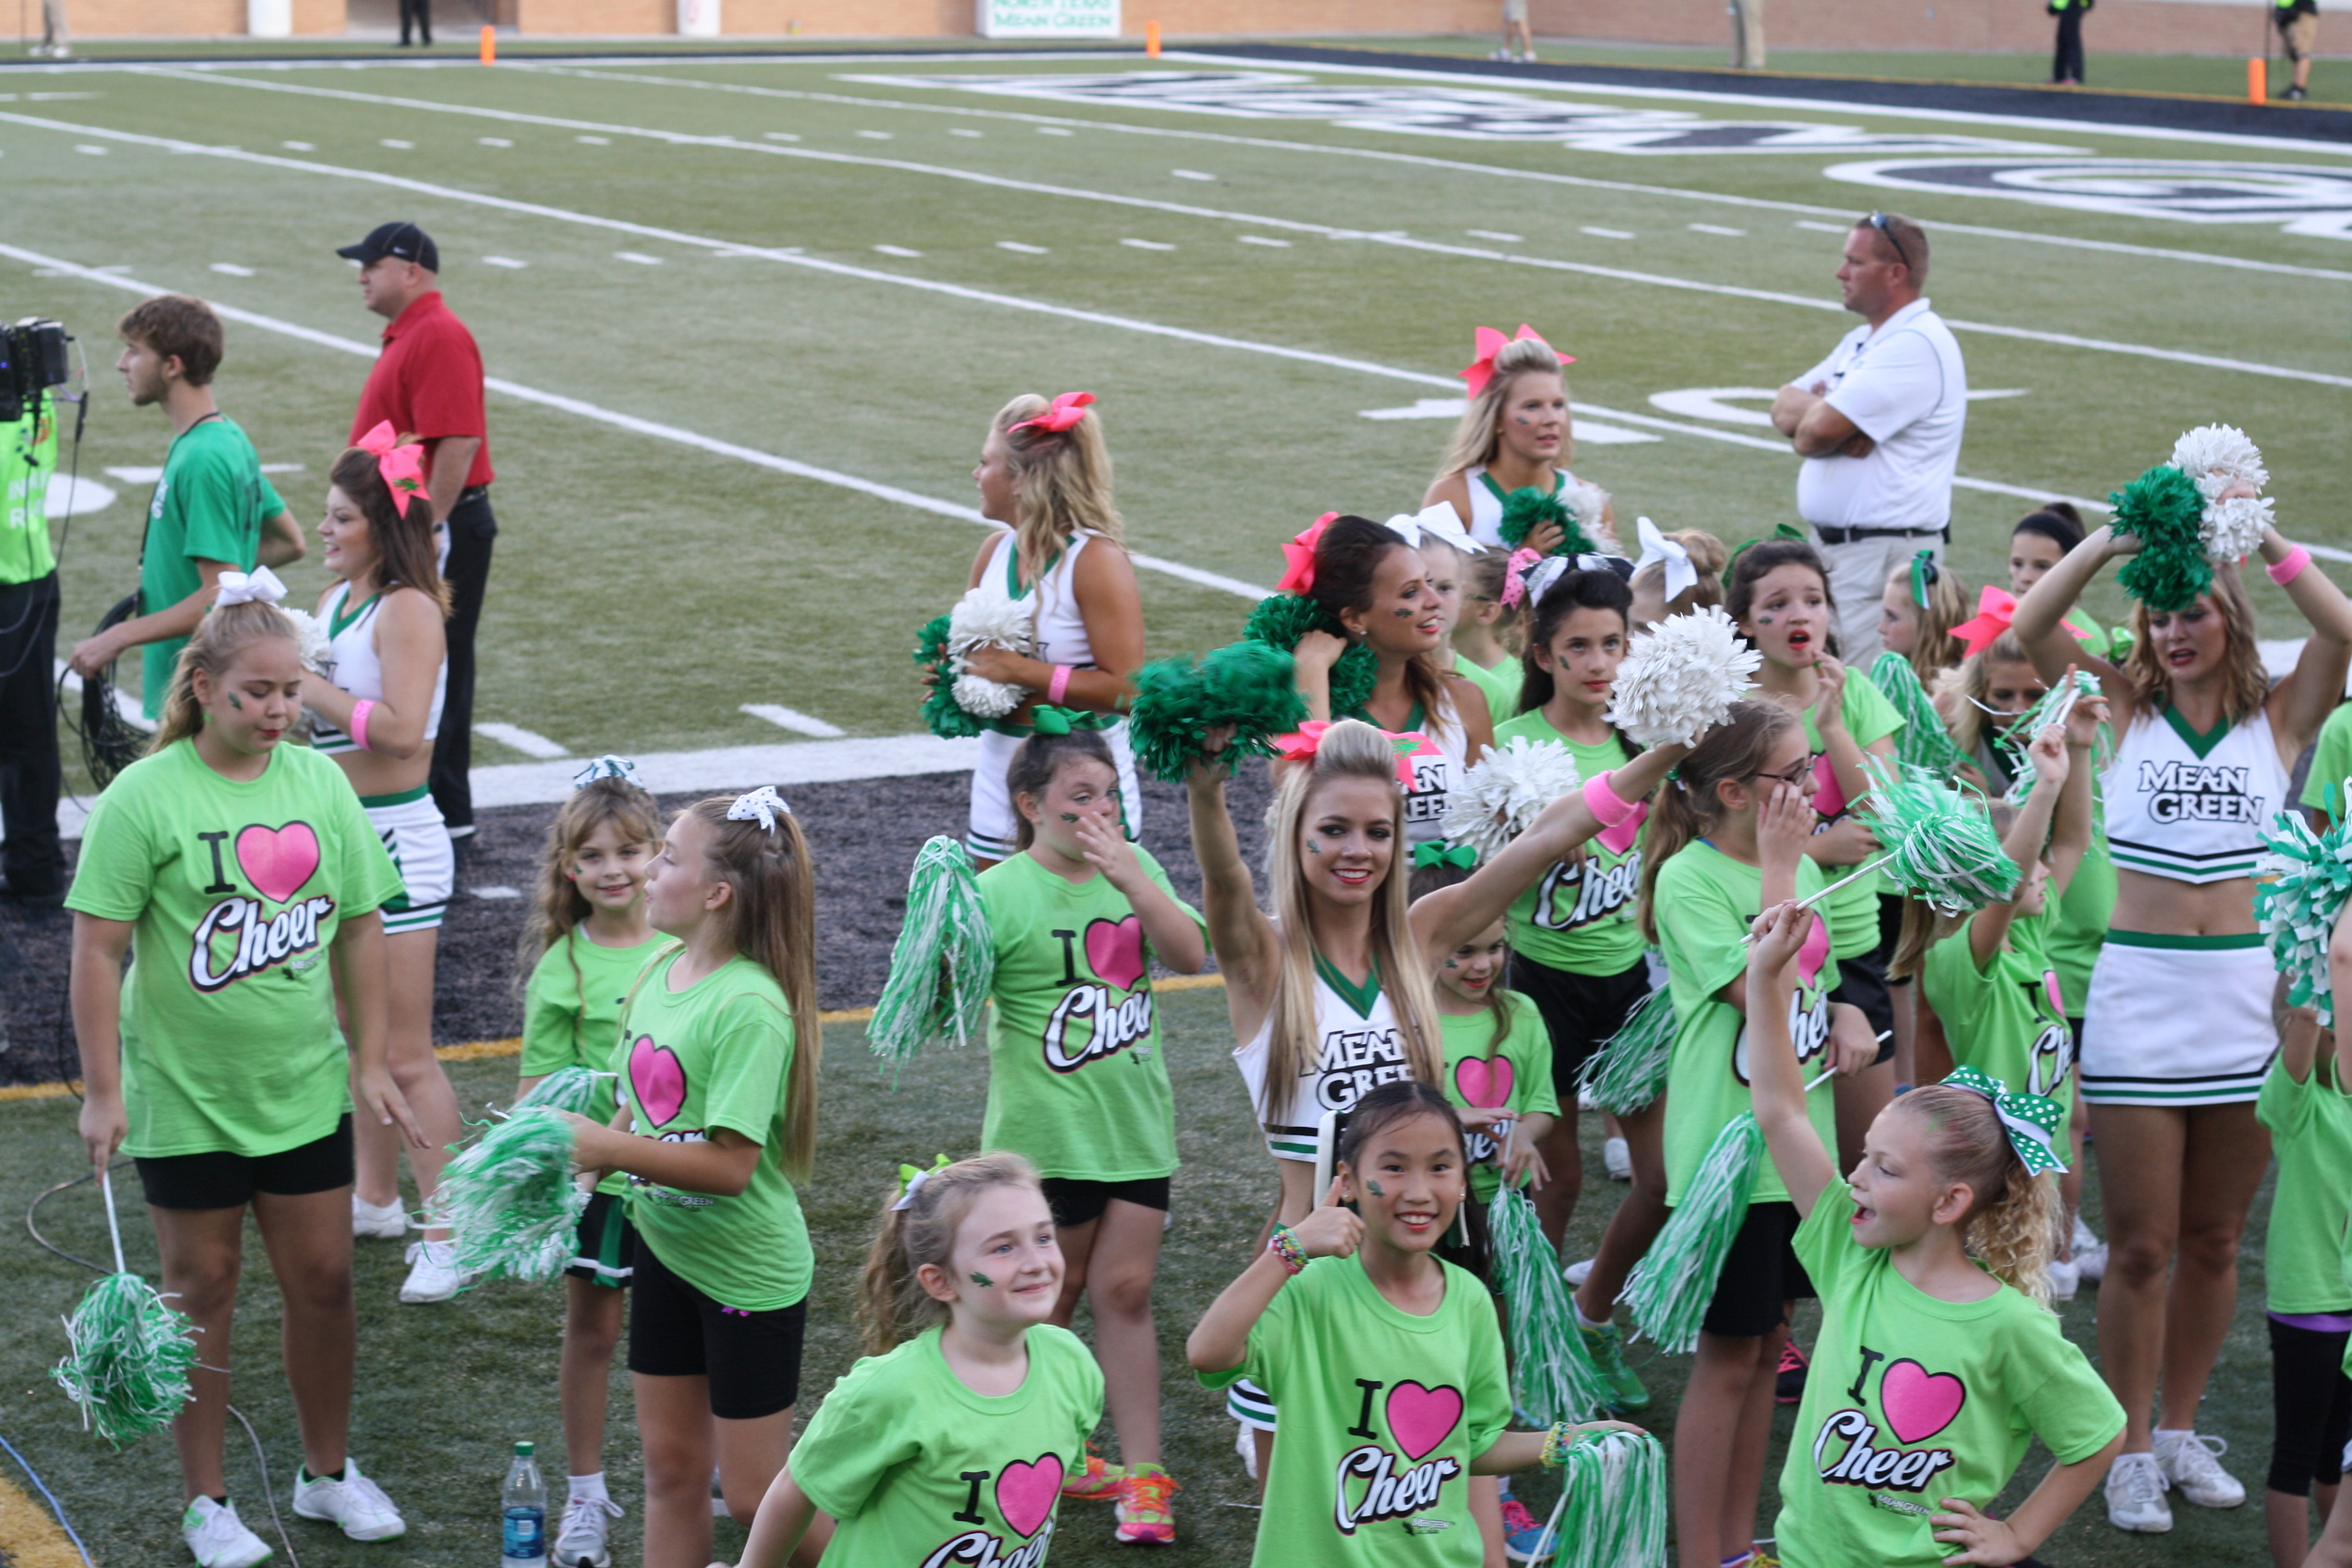 Speaking of spirit being taught to future generations - we're pretty convinced 'cheer camp' is just code for little kids bouncing around on the side lines. It's cool - its so dang cute we'll let it slide.